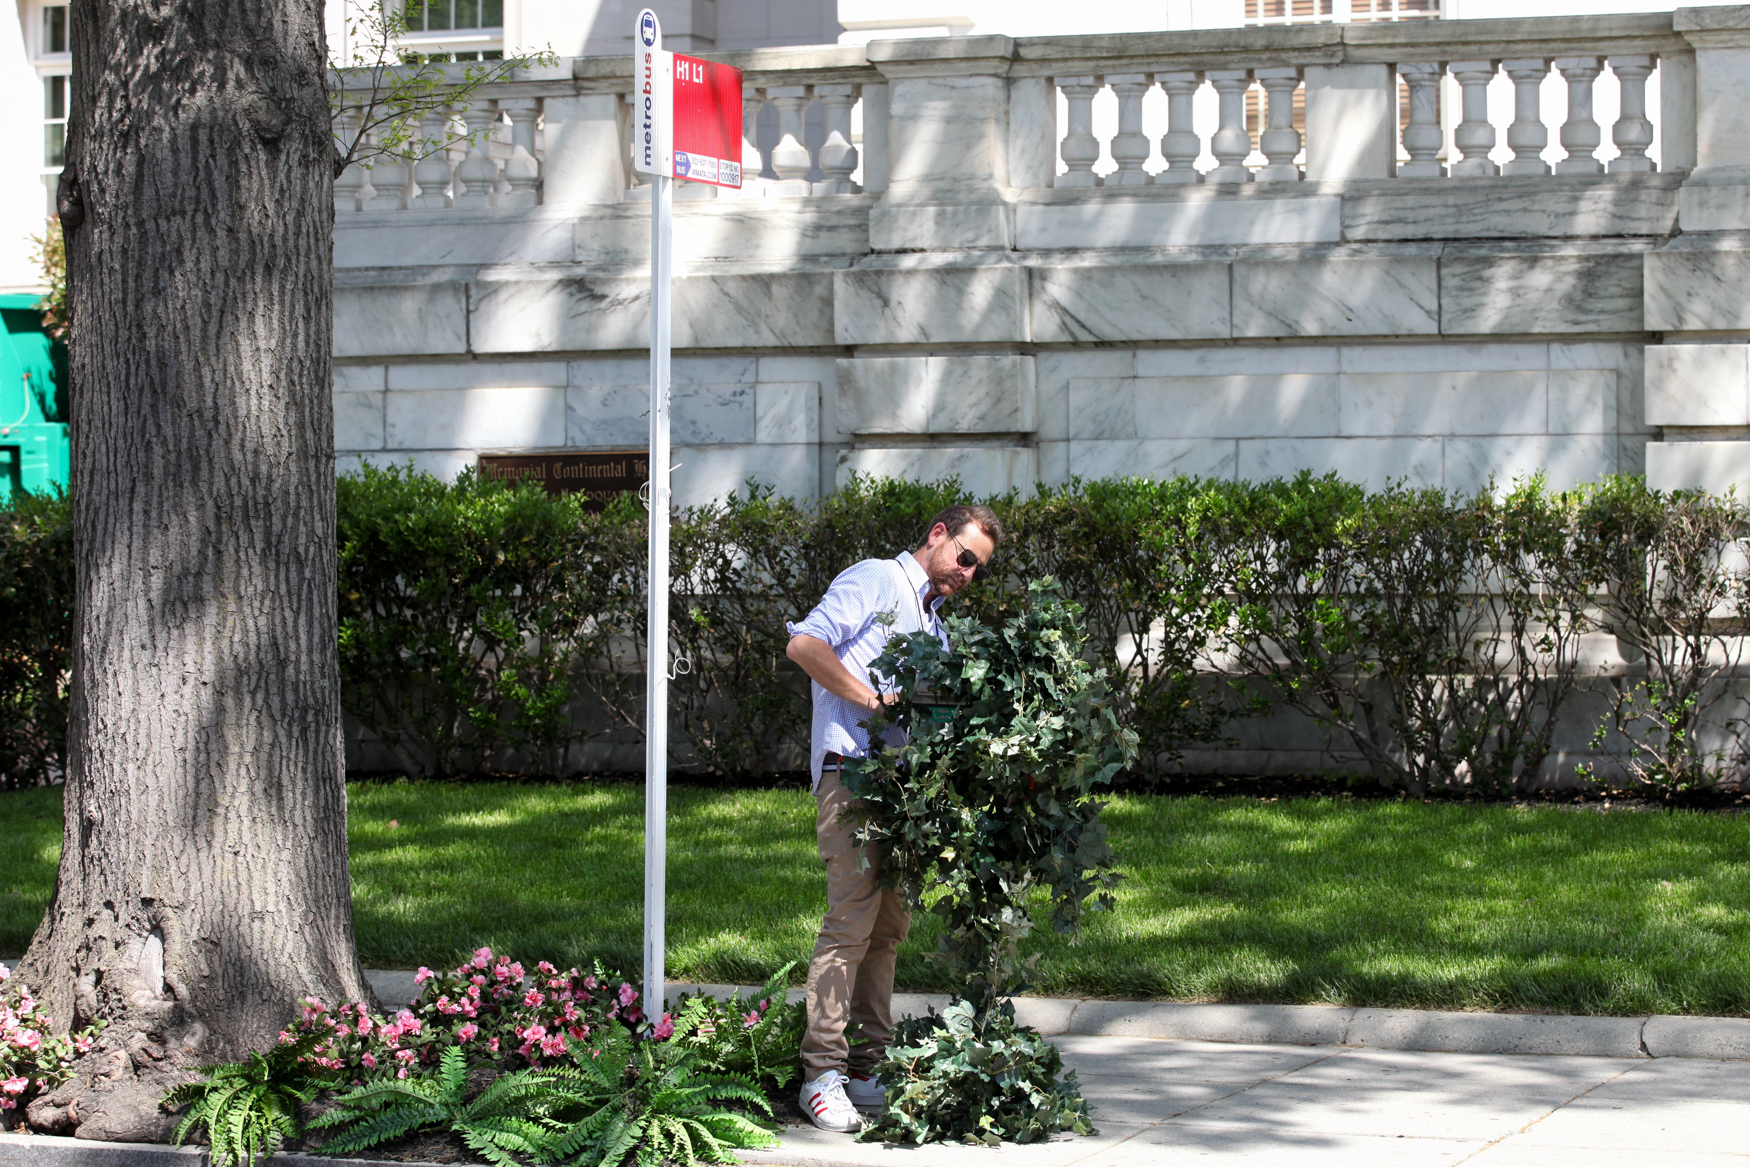 Adjusting some fake plants to conceal a parking meter outside of DAR Hall. (Photo by DC Refined)